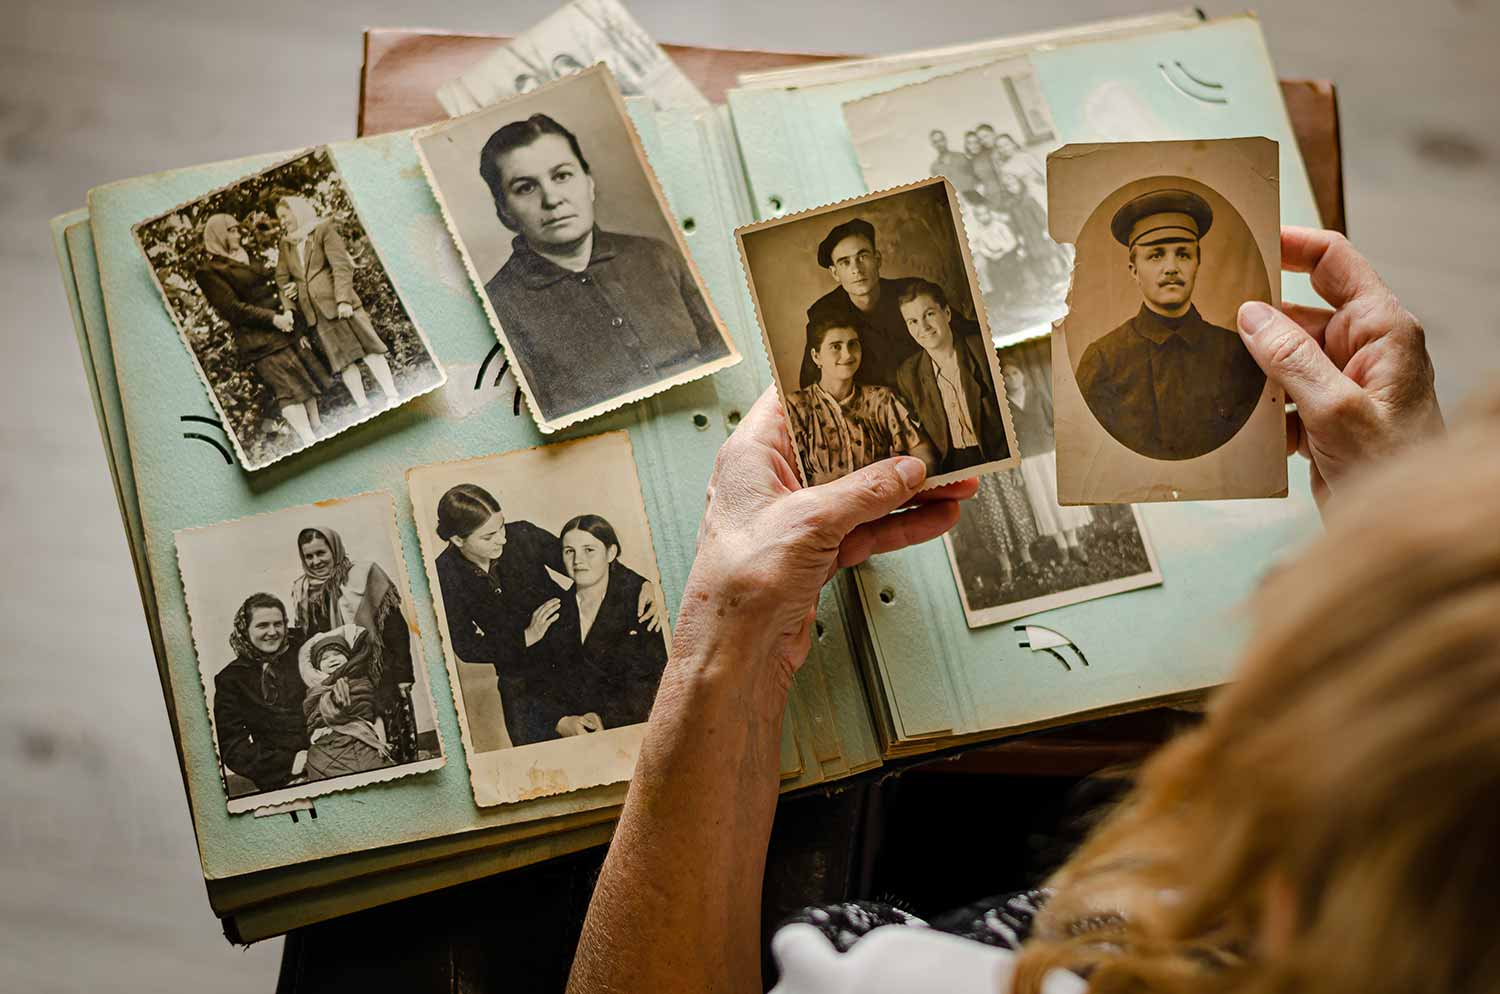 Tips to repair old photos